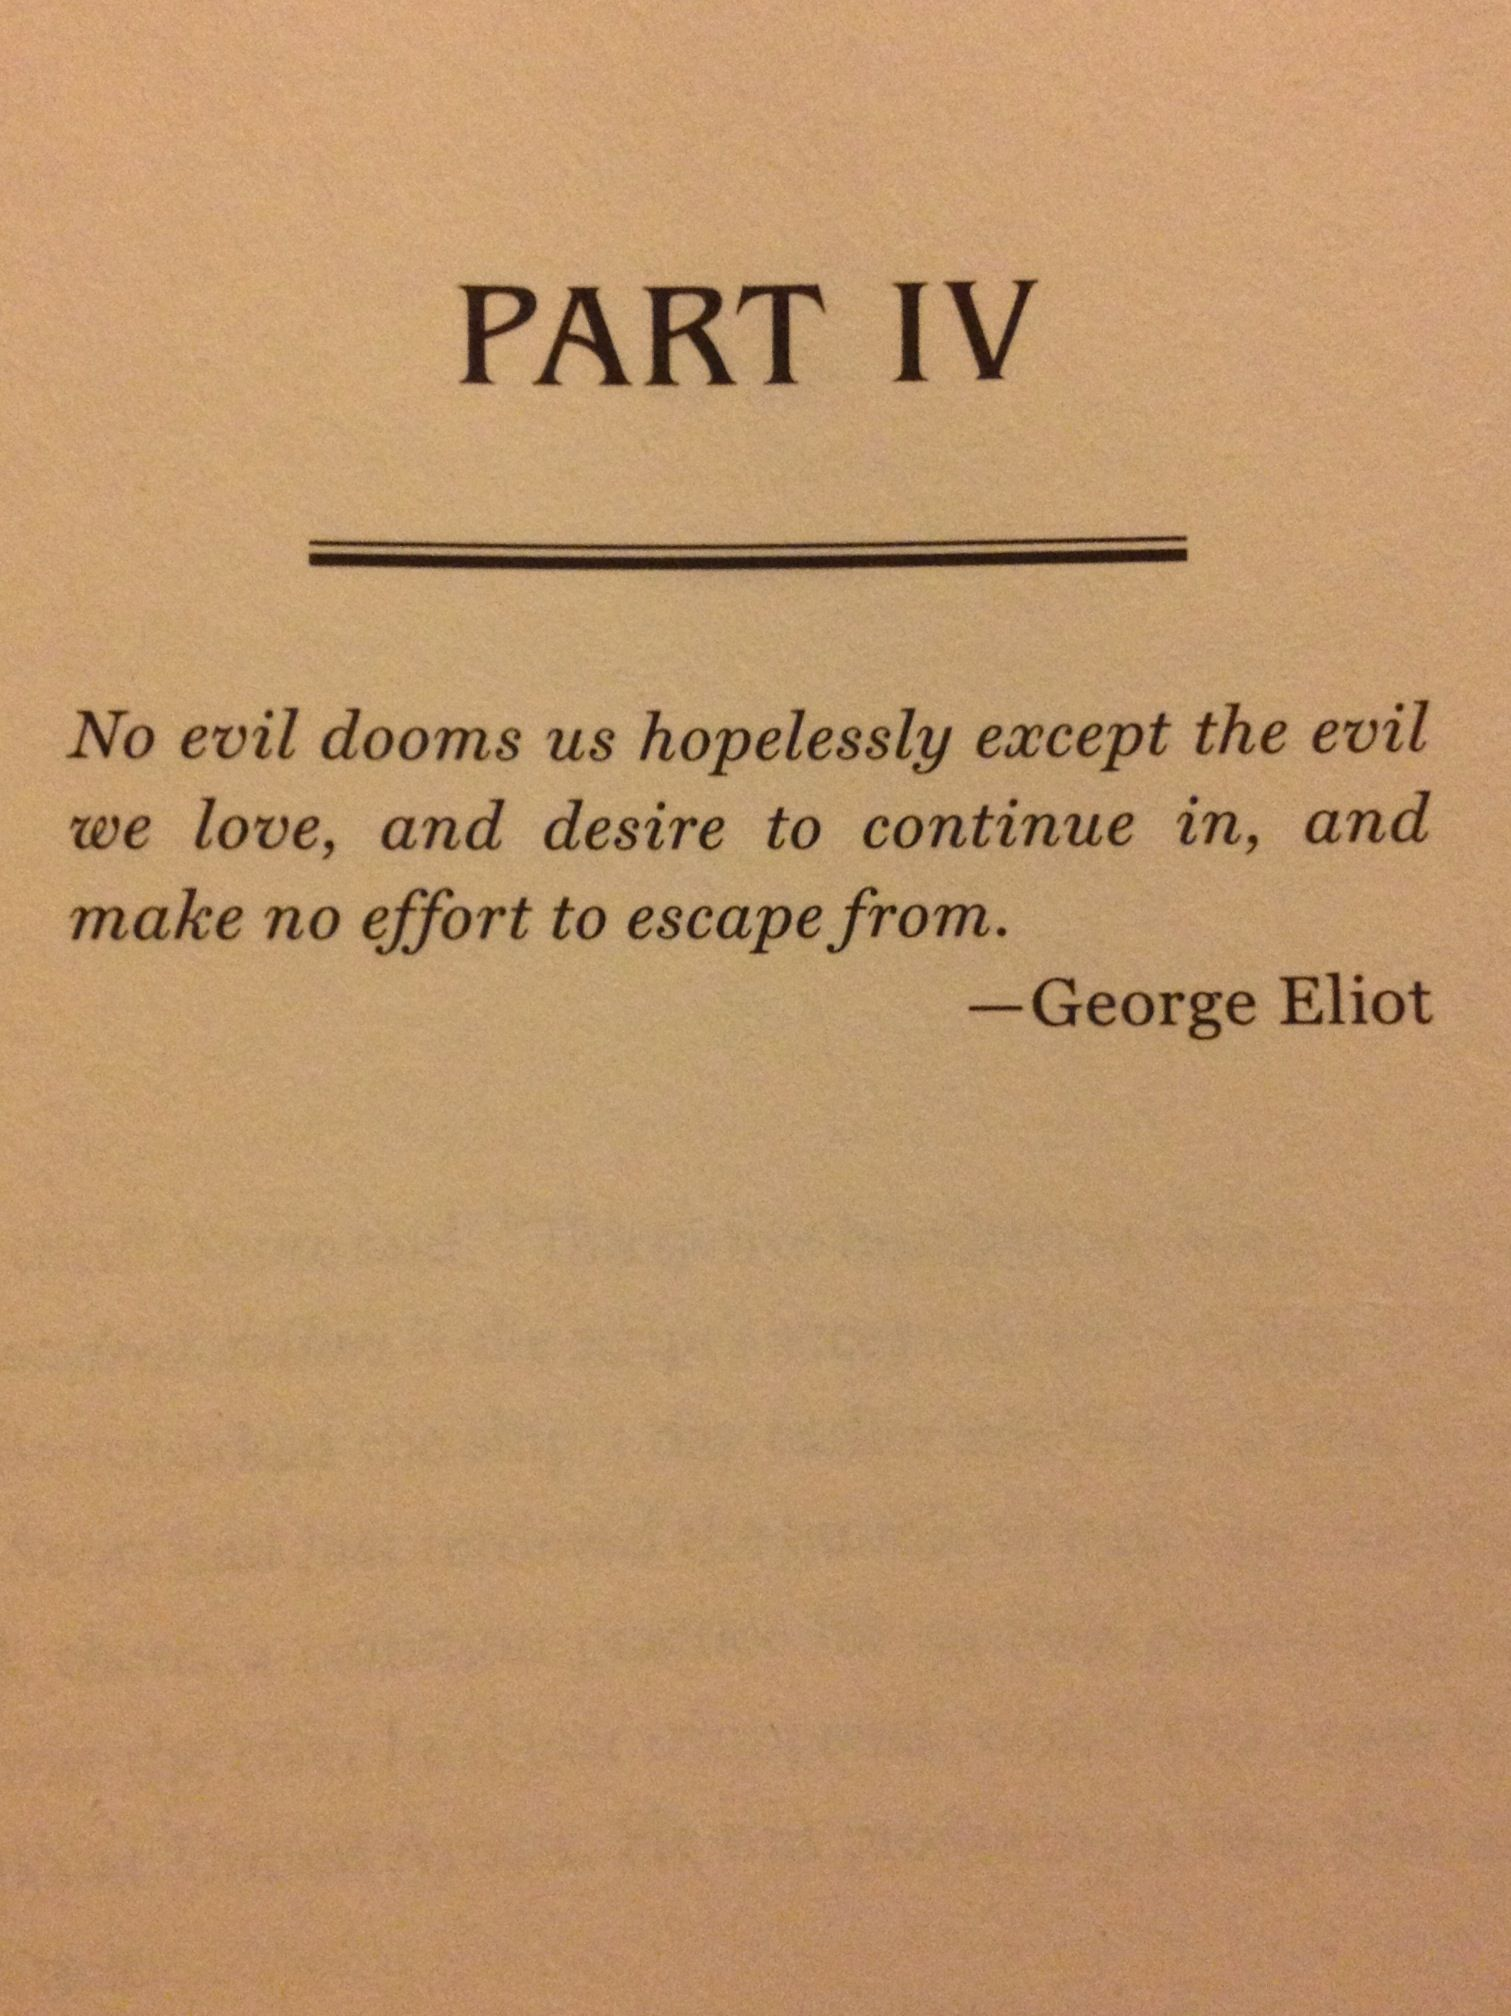 No evil dooms us hopelessly except the evil we love, and desire to continue in, and make no effort to escape from.